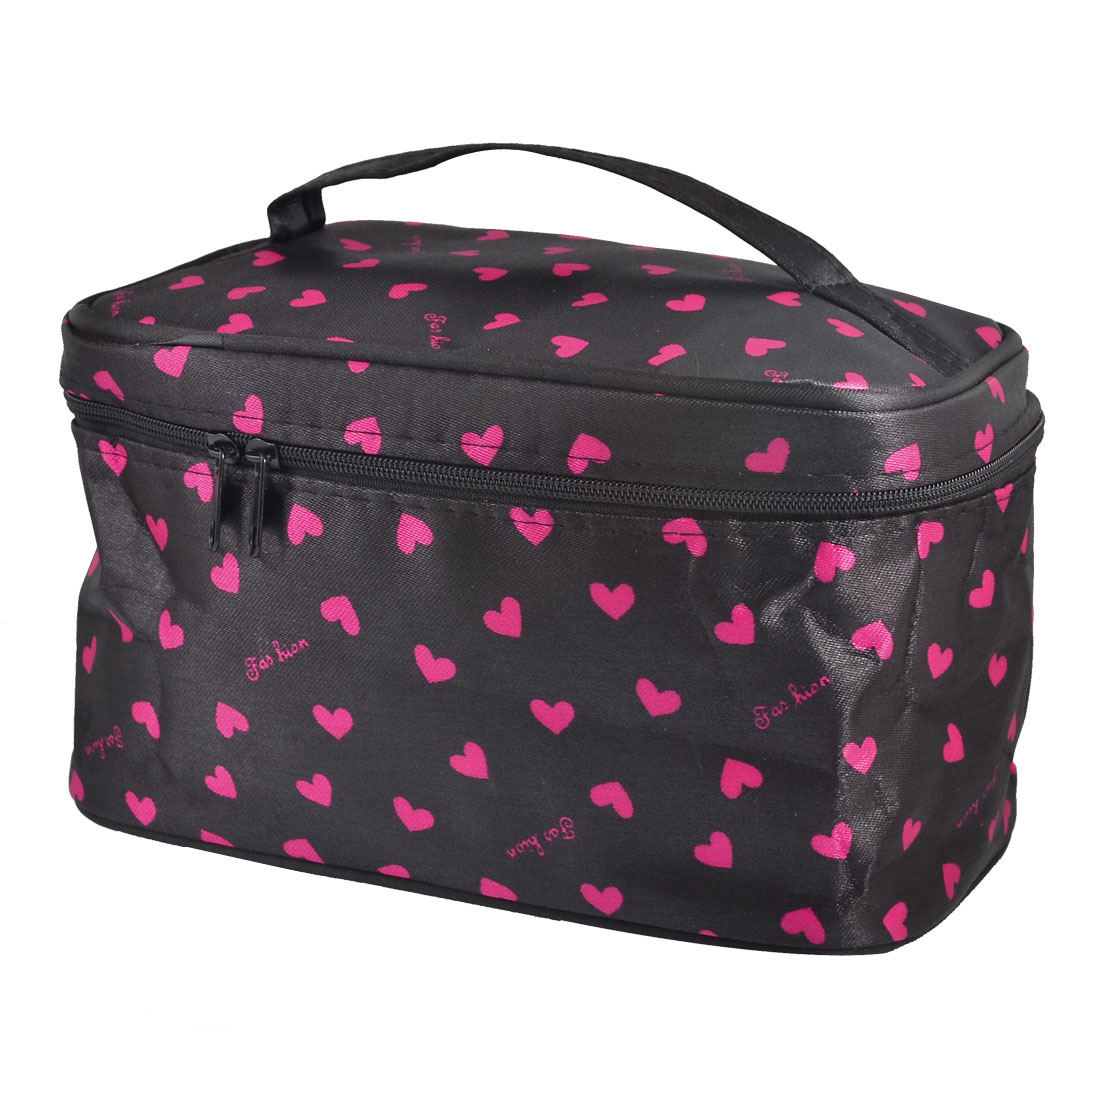 Women Heart Print Zip up Closure Travel Cosmetic Bag Pouch Black